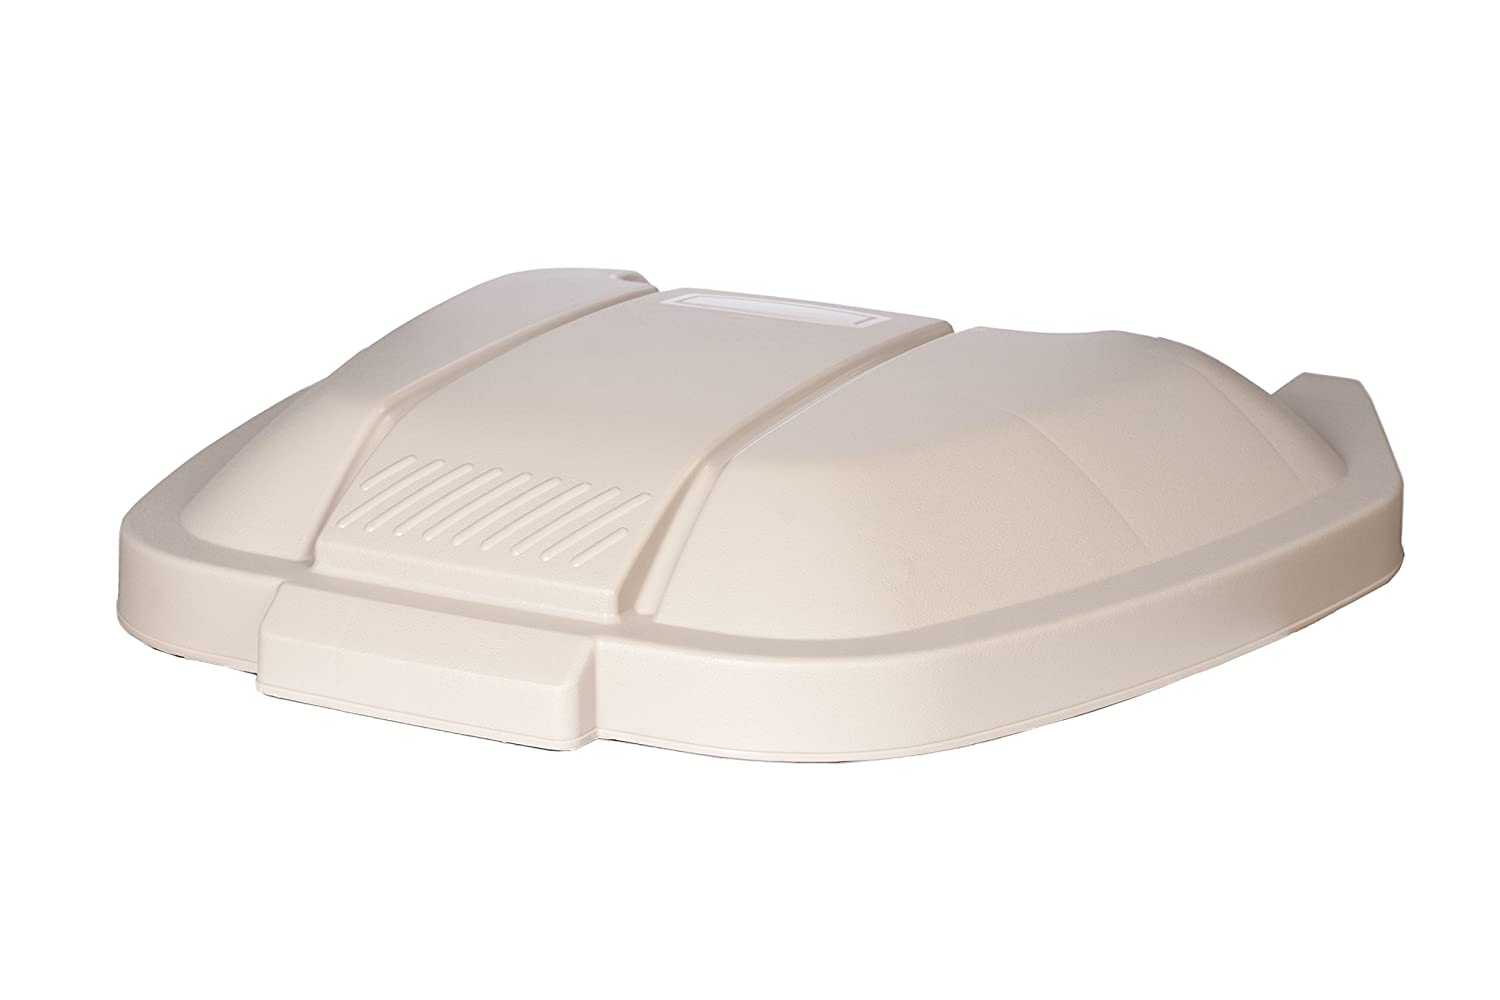 Rubbermaid Commercial Container Lid R002220